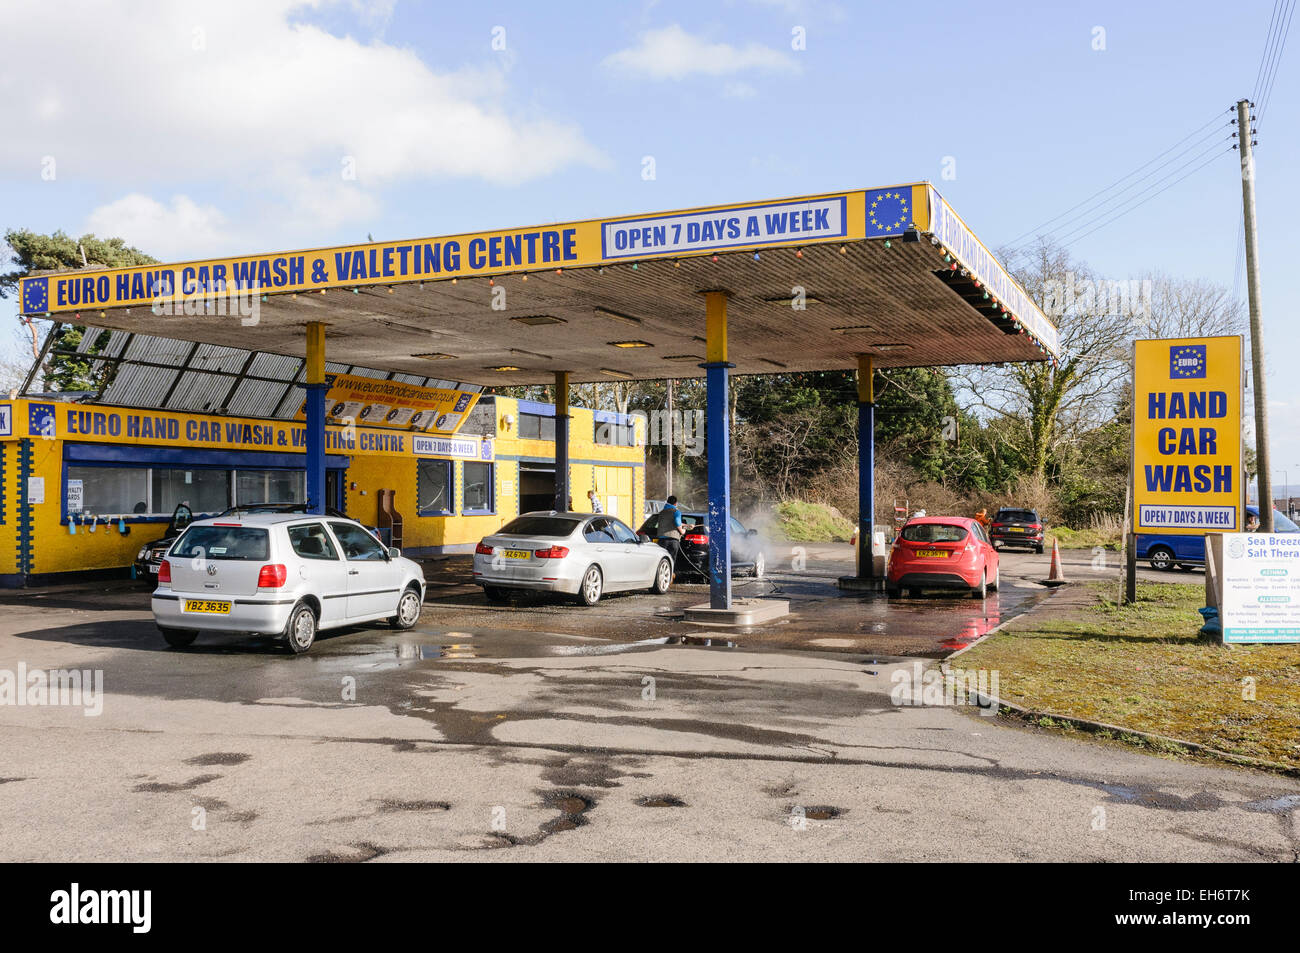 Euro Hand Car Wash And Valeting Centre Stock Photo 79441367 Alamy